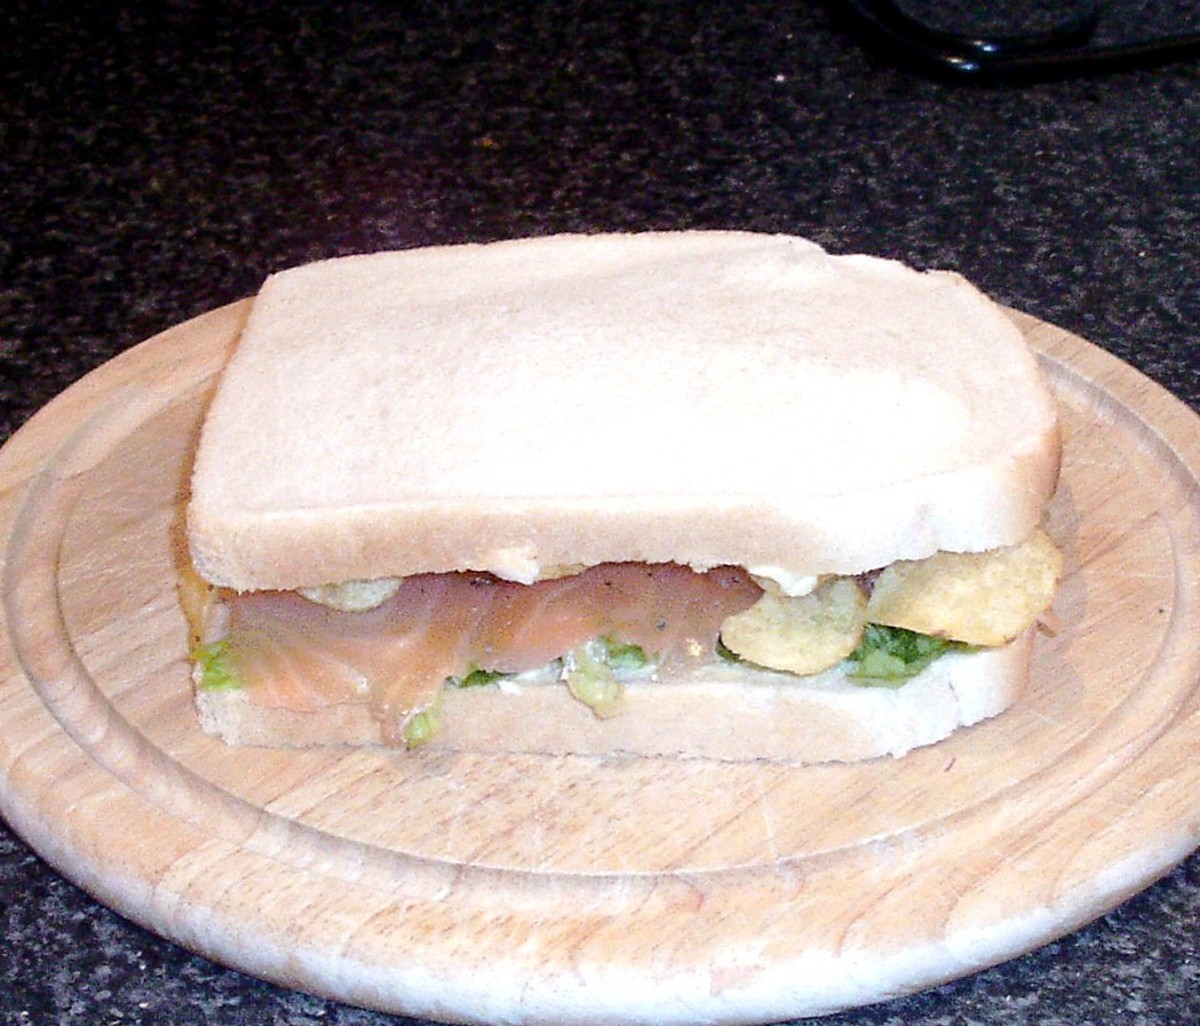 Top is placed on smoked salmon, salad and crisps sandwich